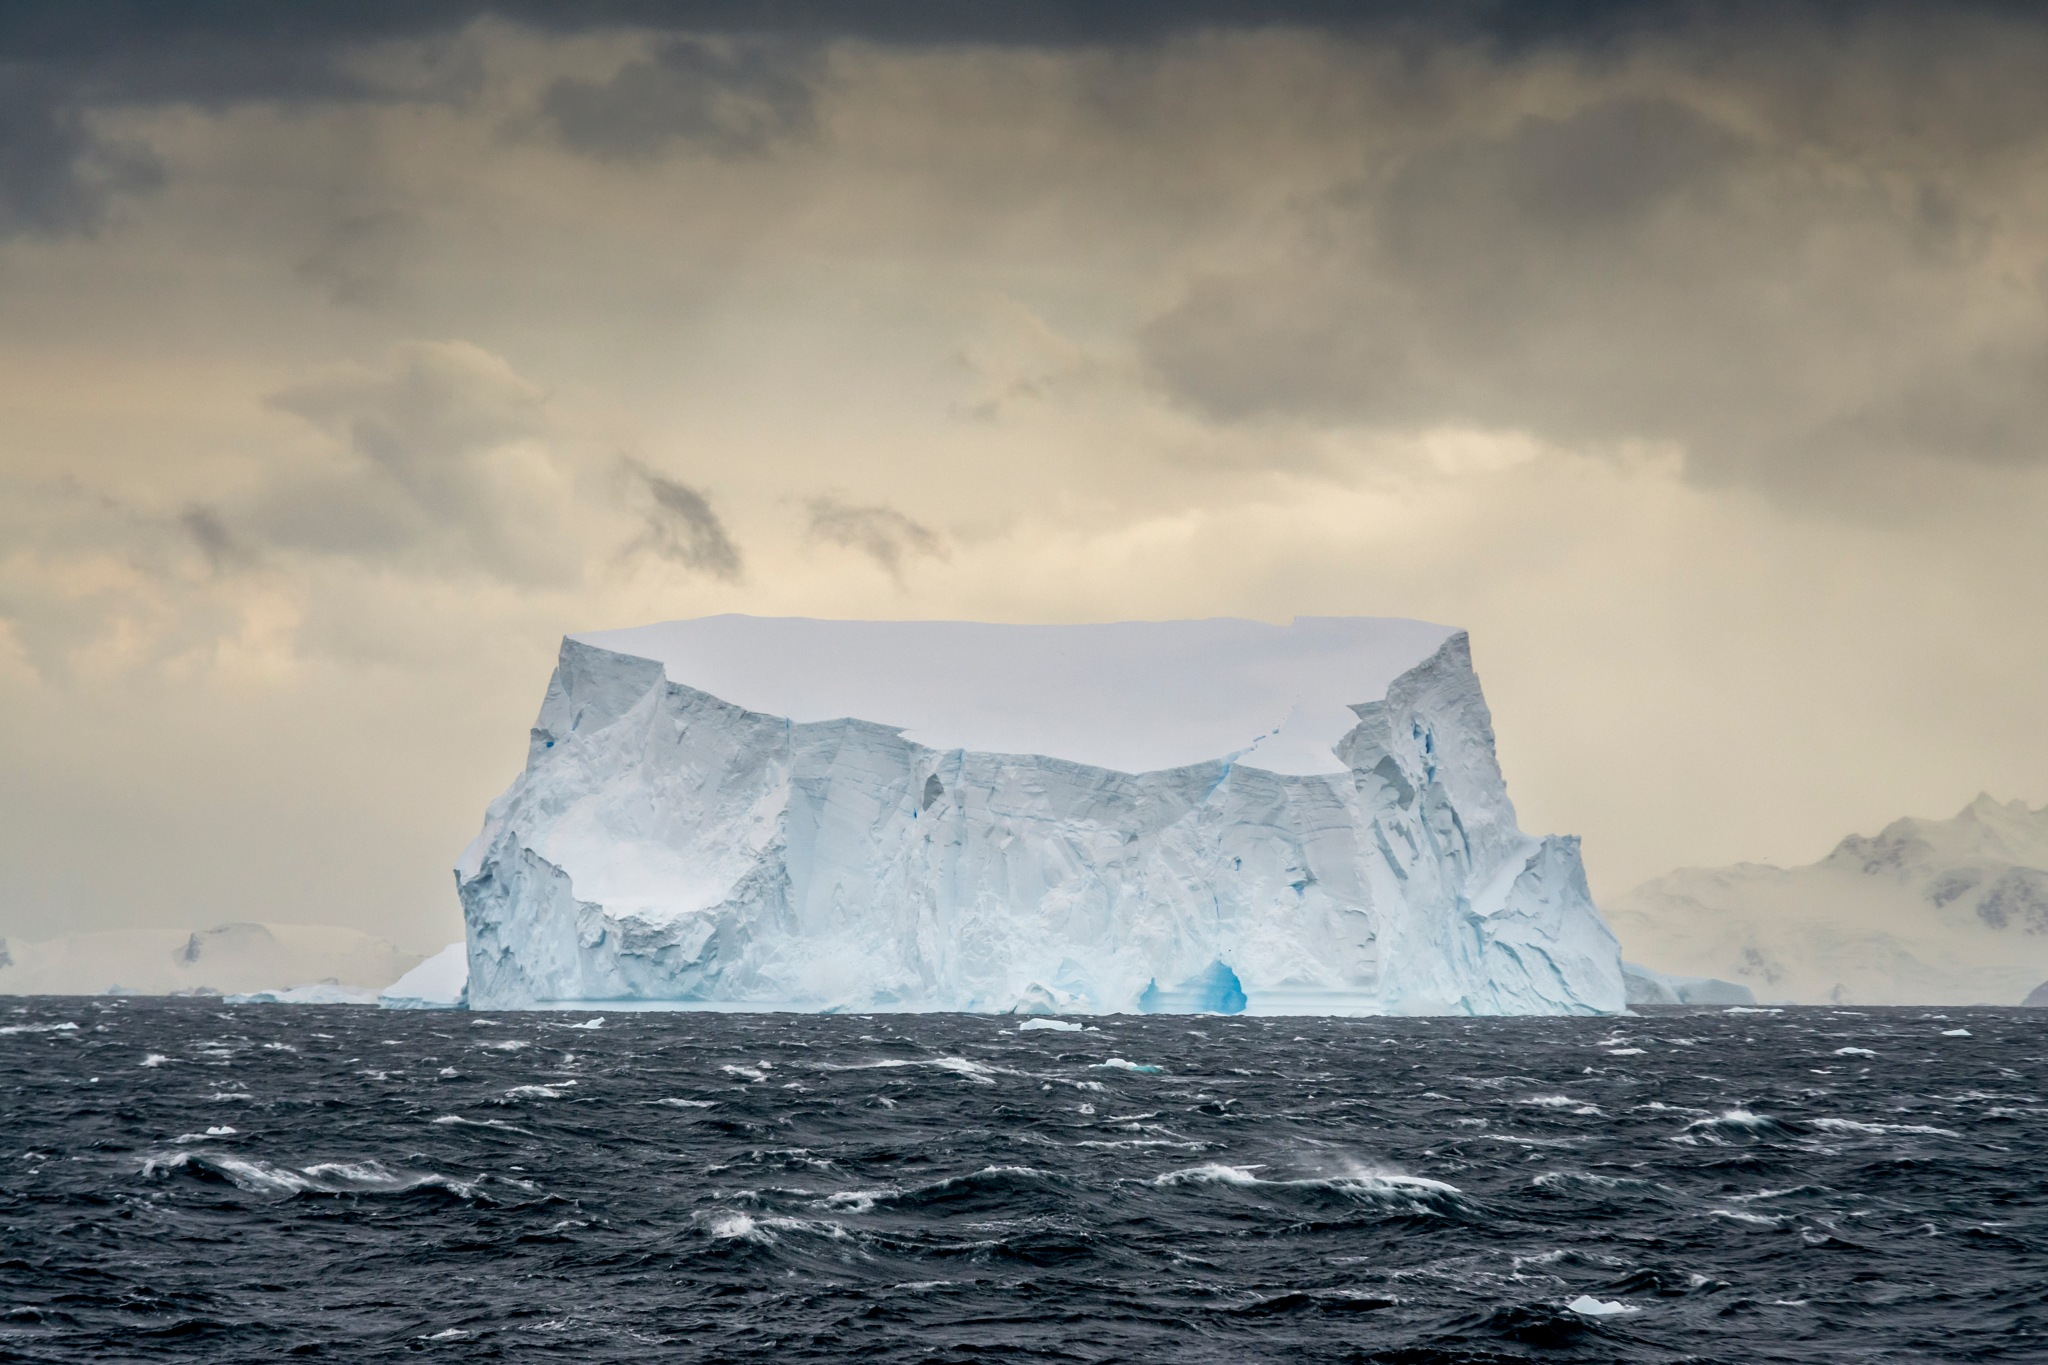 Antarctica by nilsons1974